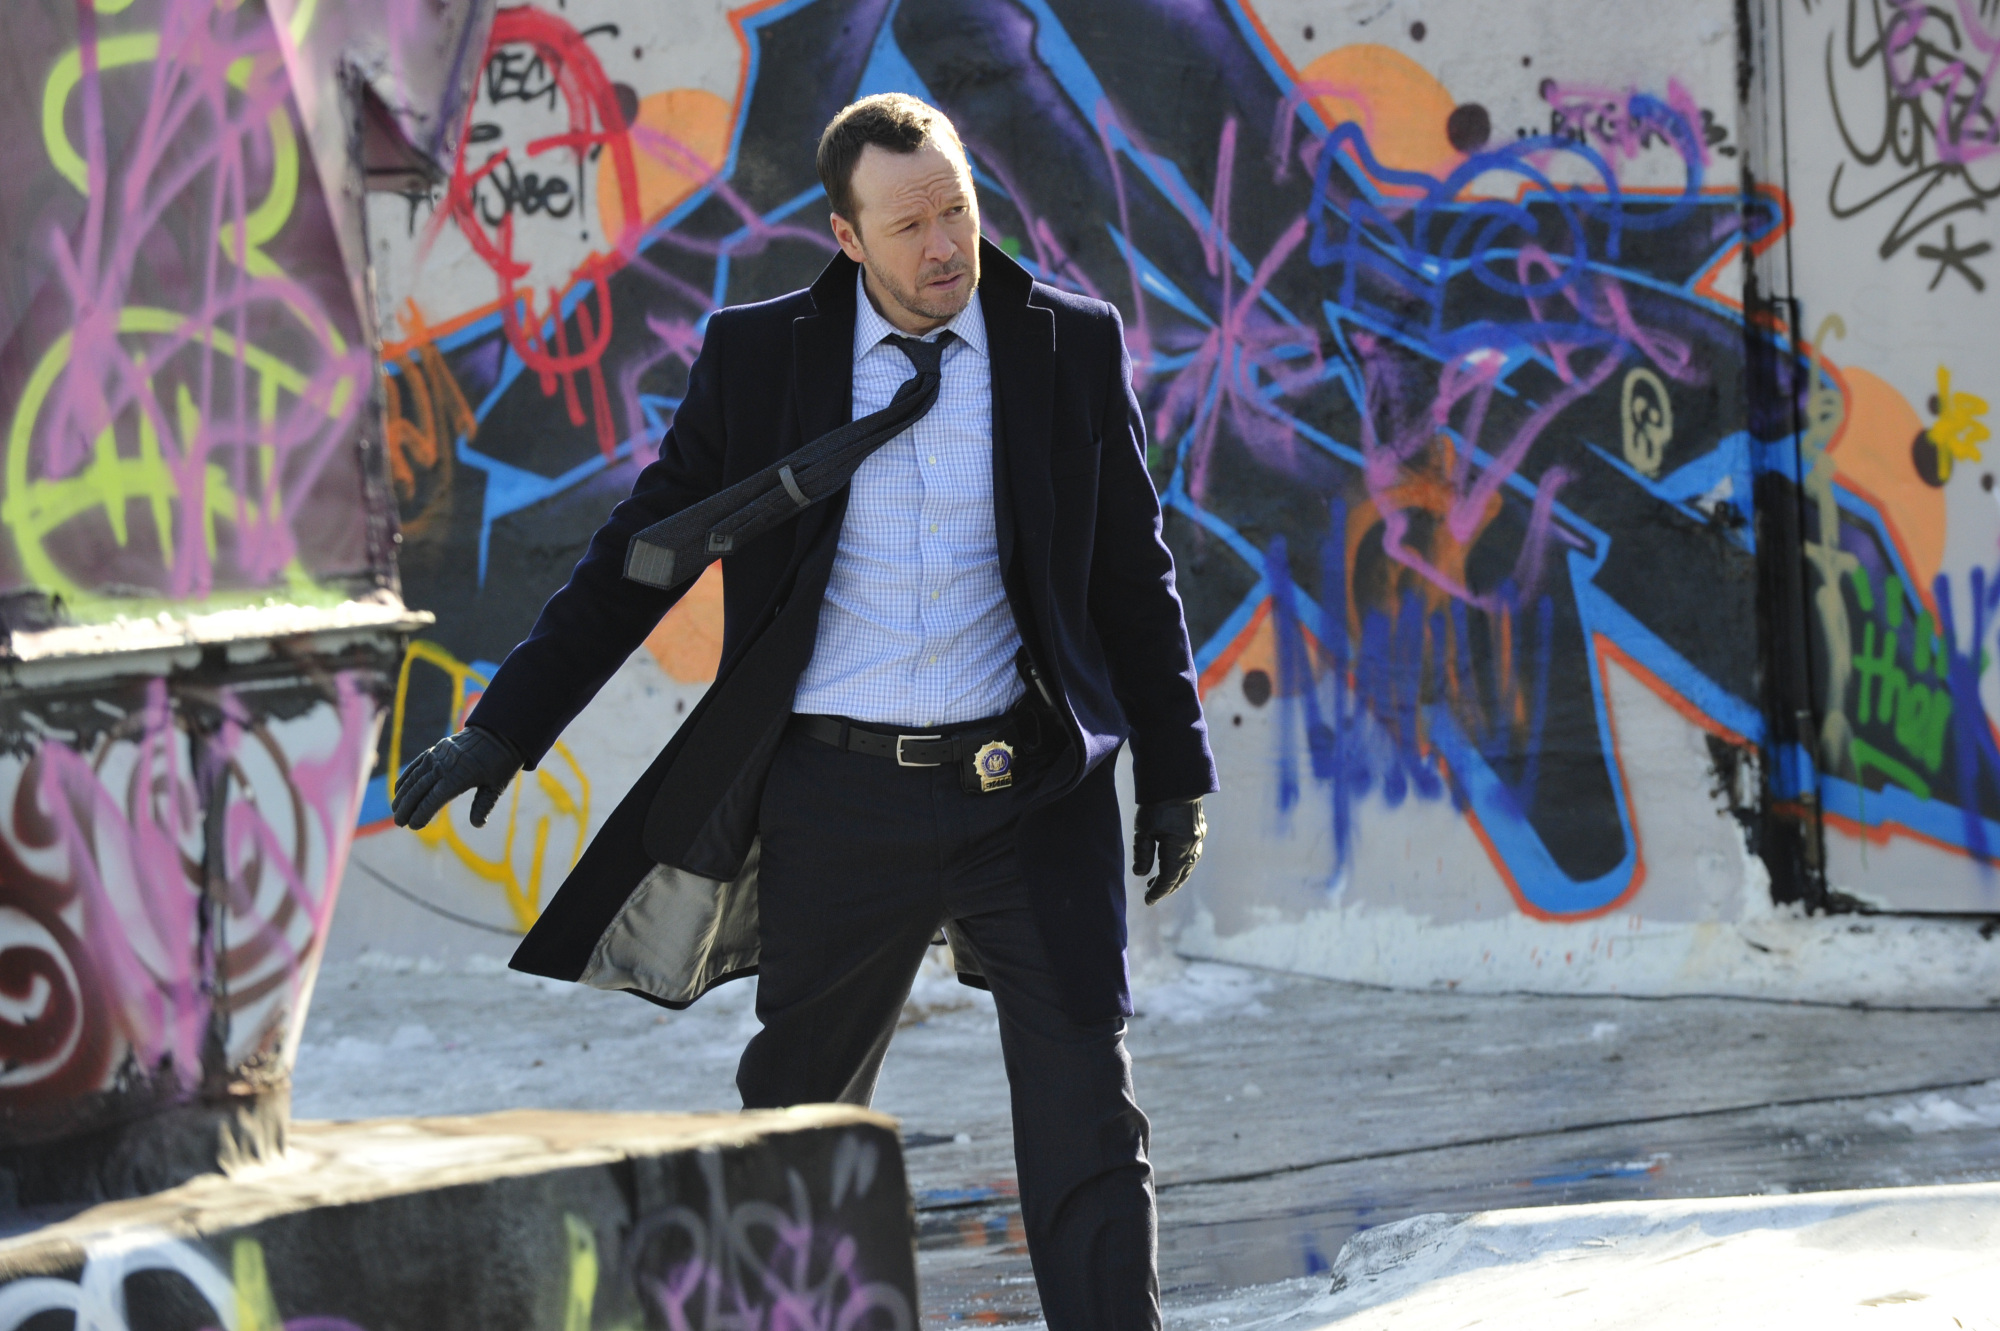 30. Donnie Wahlberg created the TV show